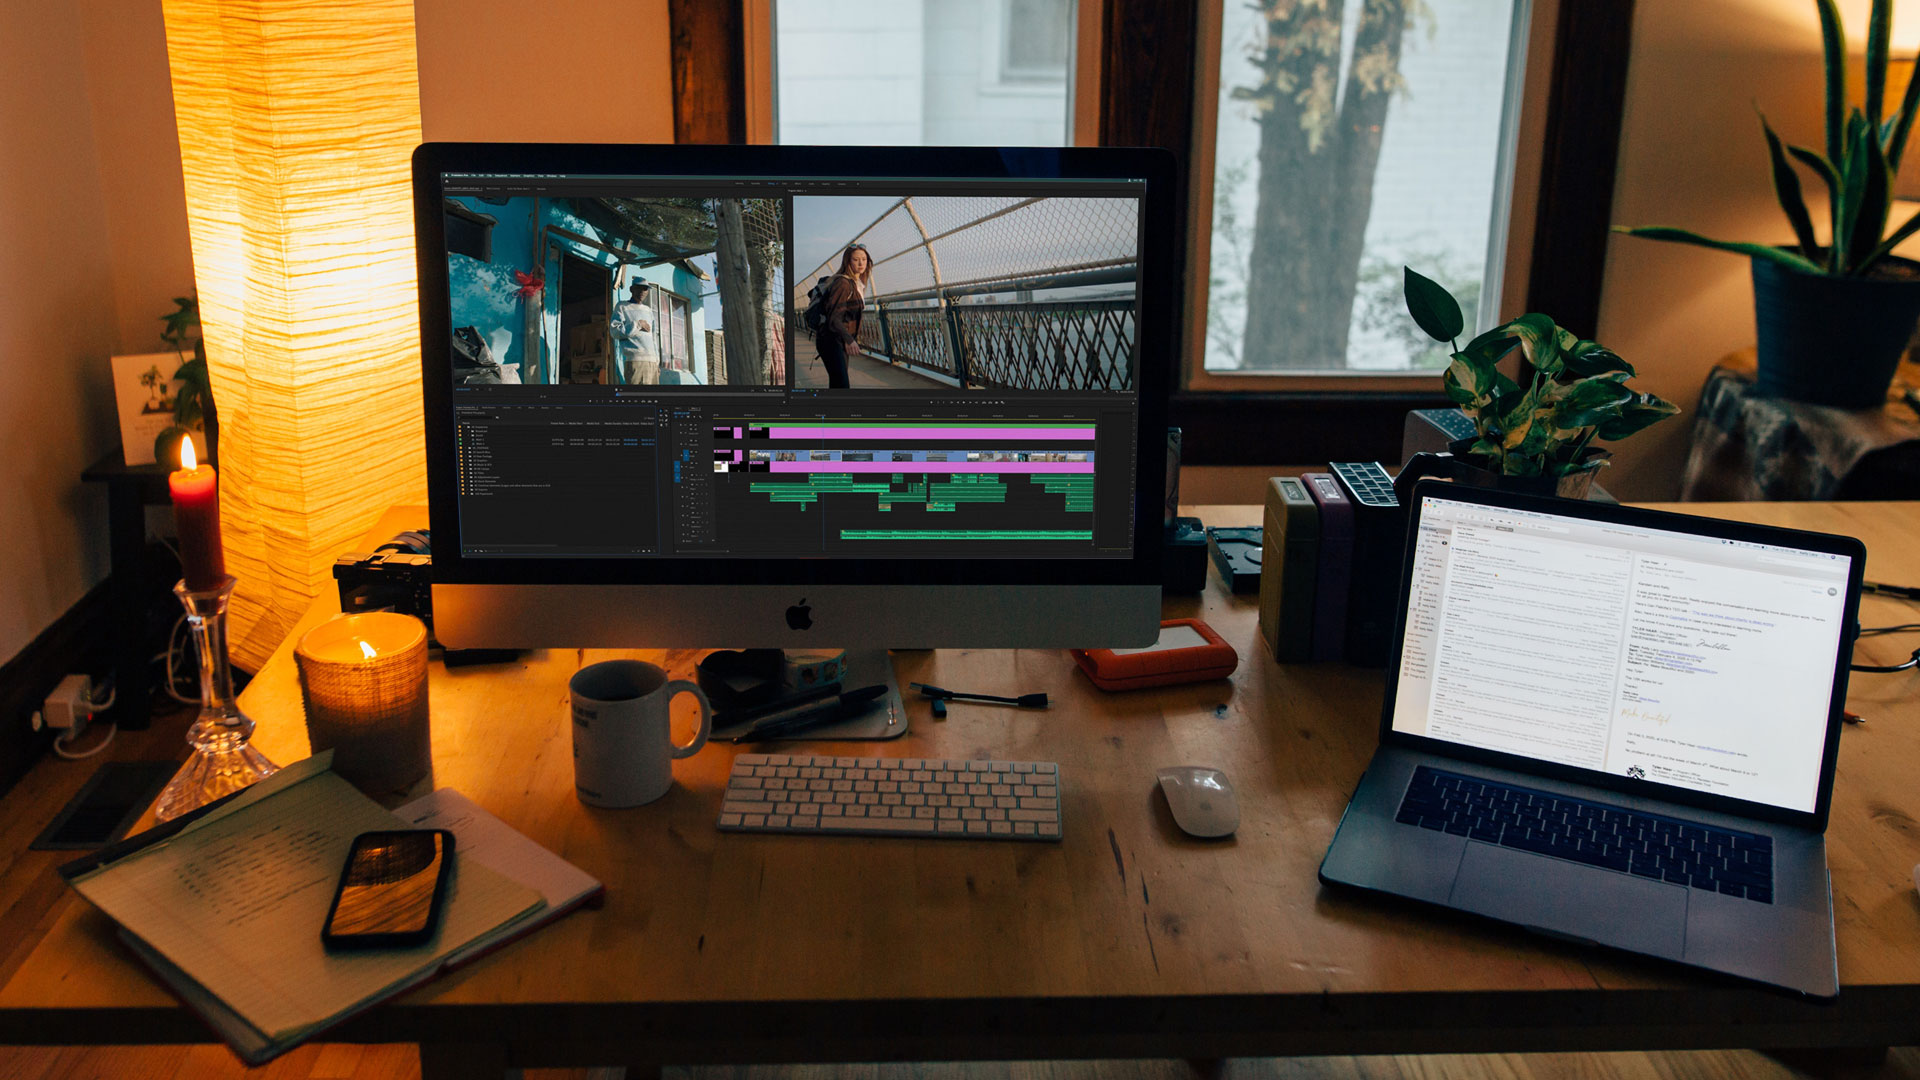 A-Z of video editing for beginners